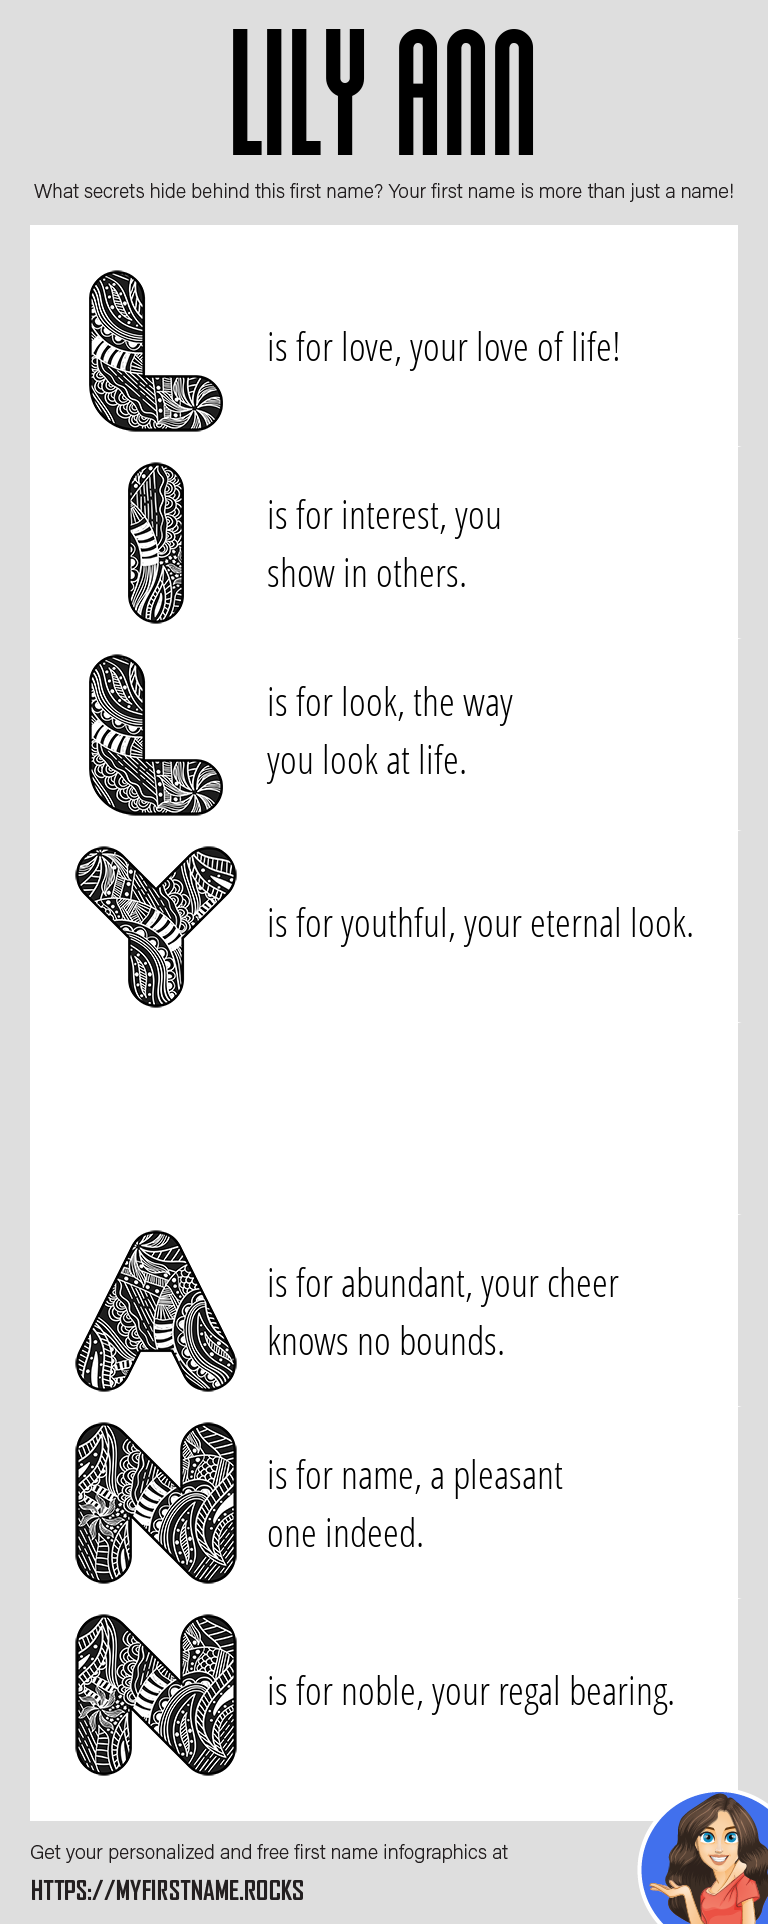 Lily Ann Infographics